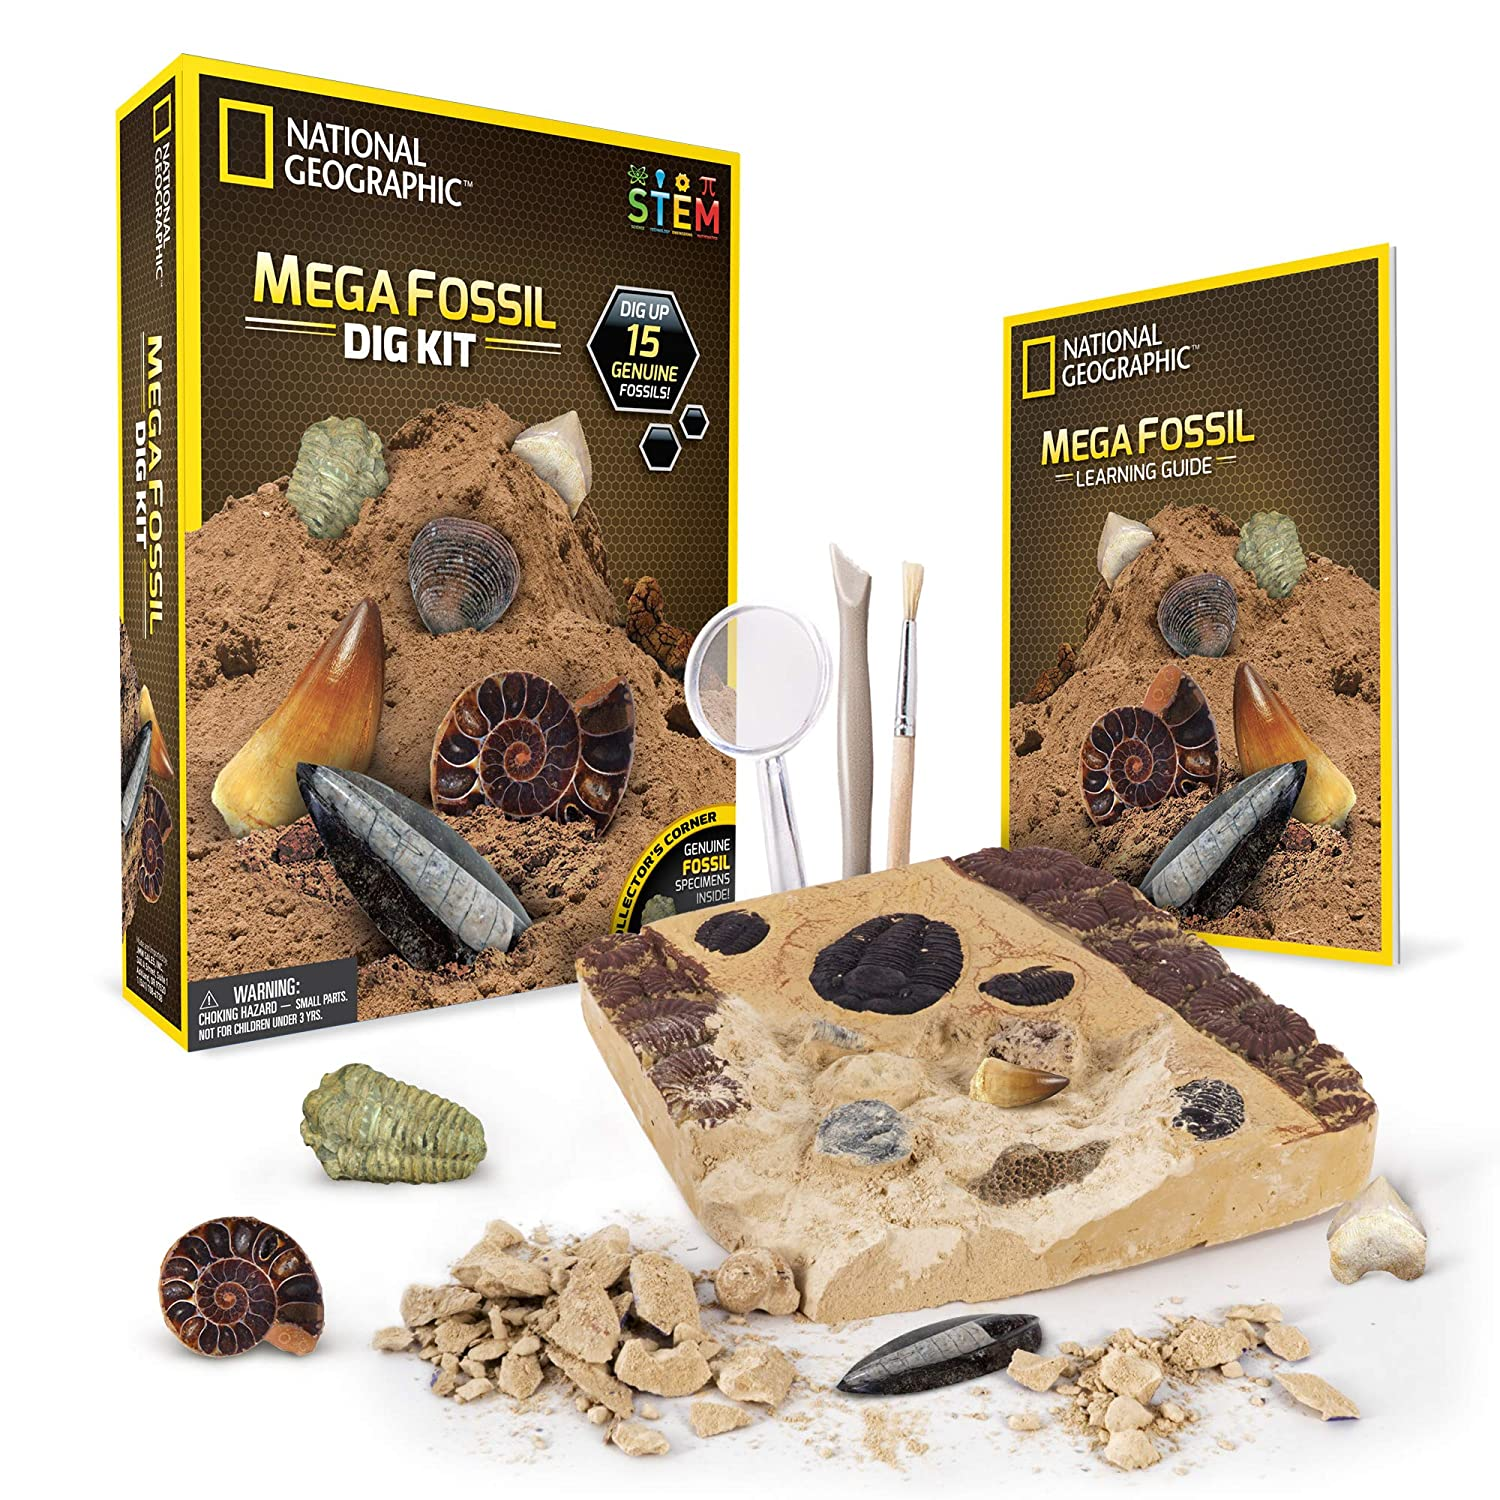 NATIONAL GEOGRAPHIC Mega Fossil Dig Kit – Excavate 15 real fossils  including Dinosaur Bones, Mosasaur & Shark Teeth - Great STEM Science gift  for